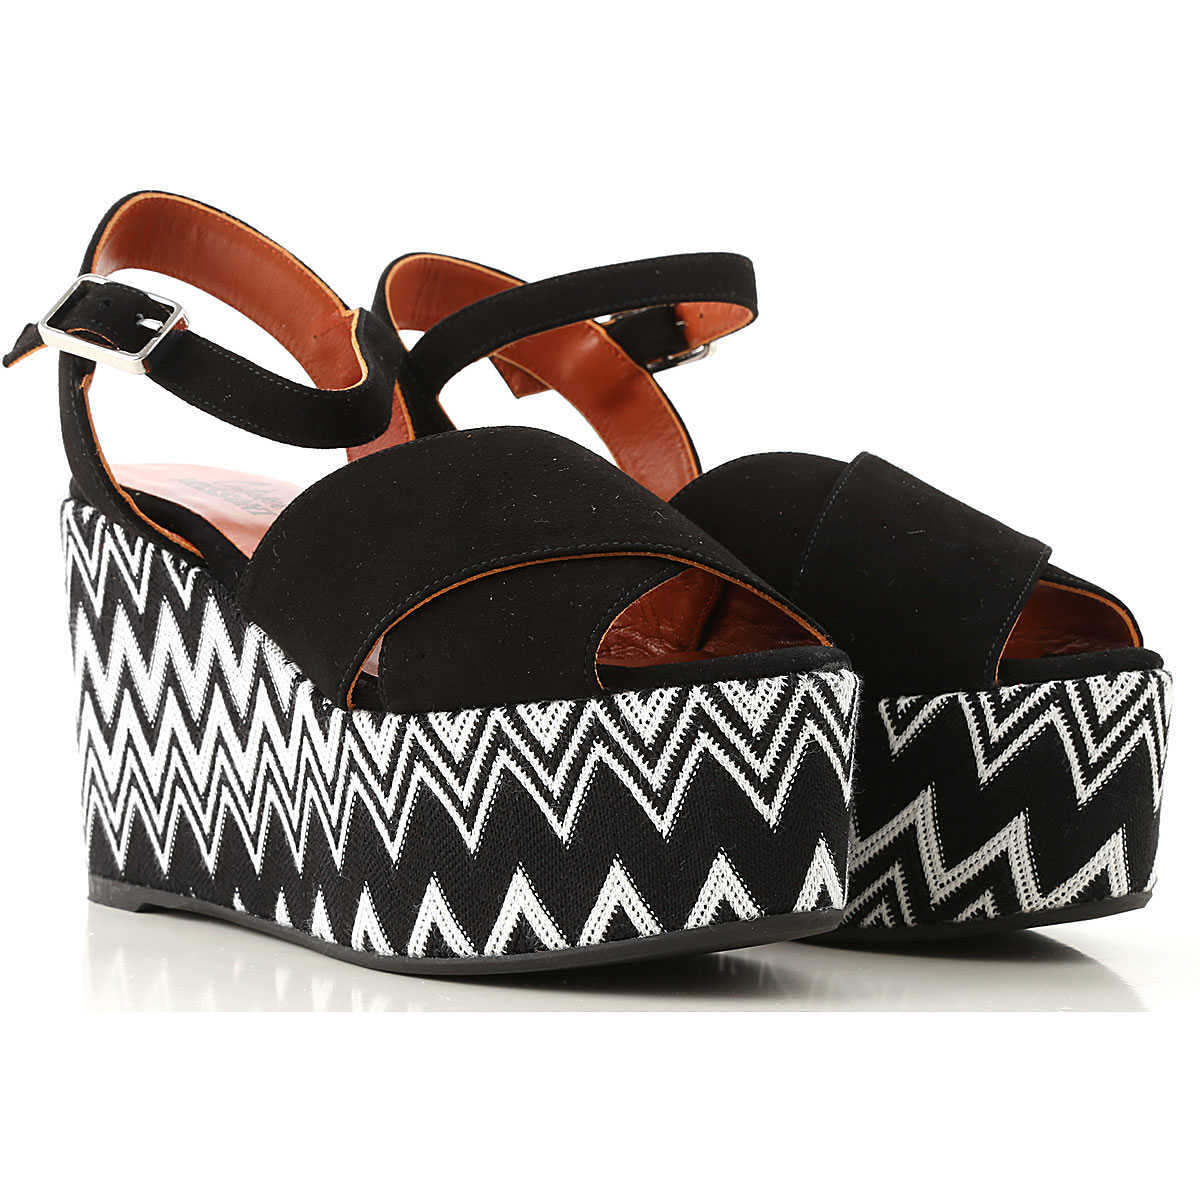 Castaner Wedges for Women Black Canada - GOOFASH - Womens HOUSE SHOES